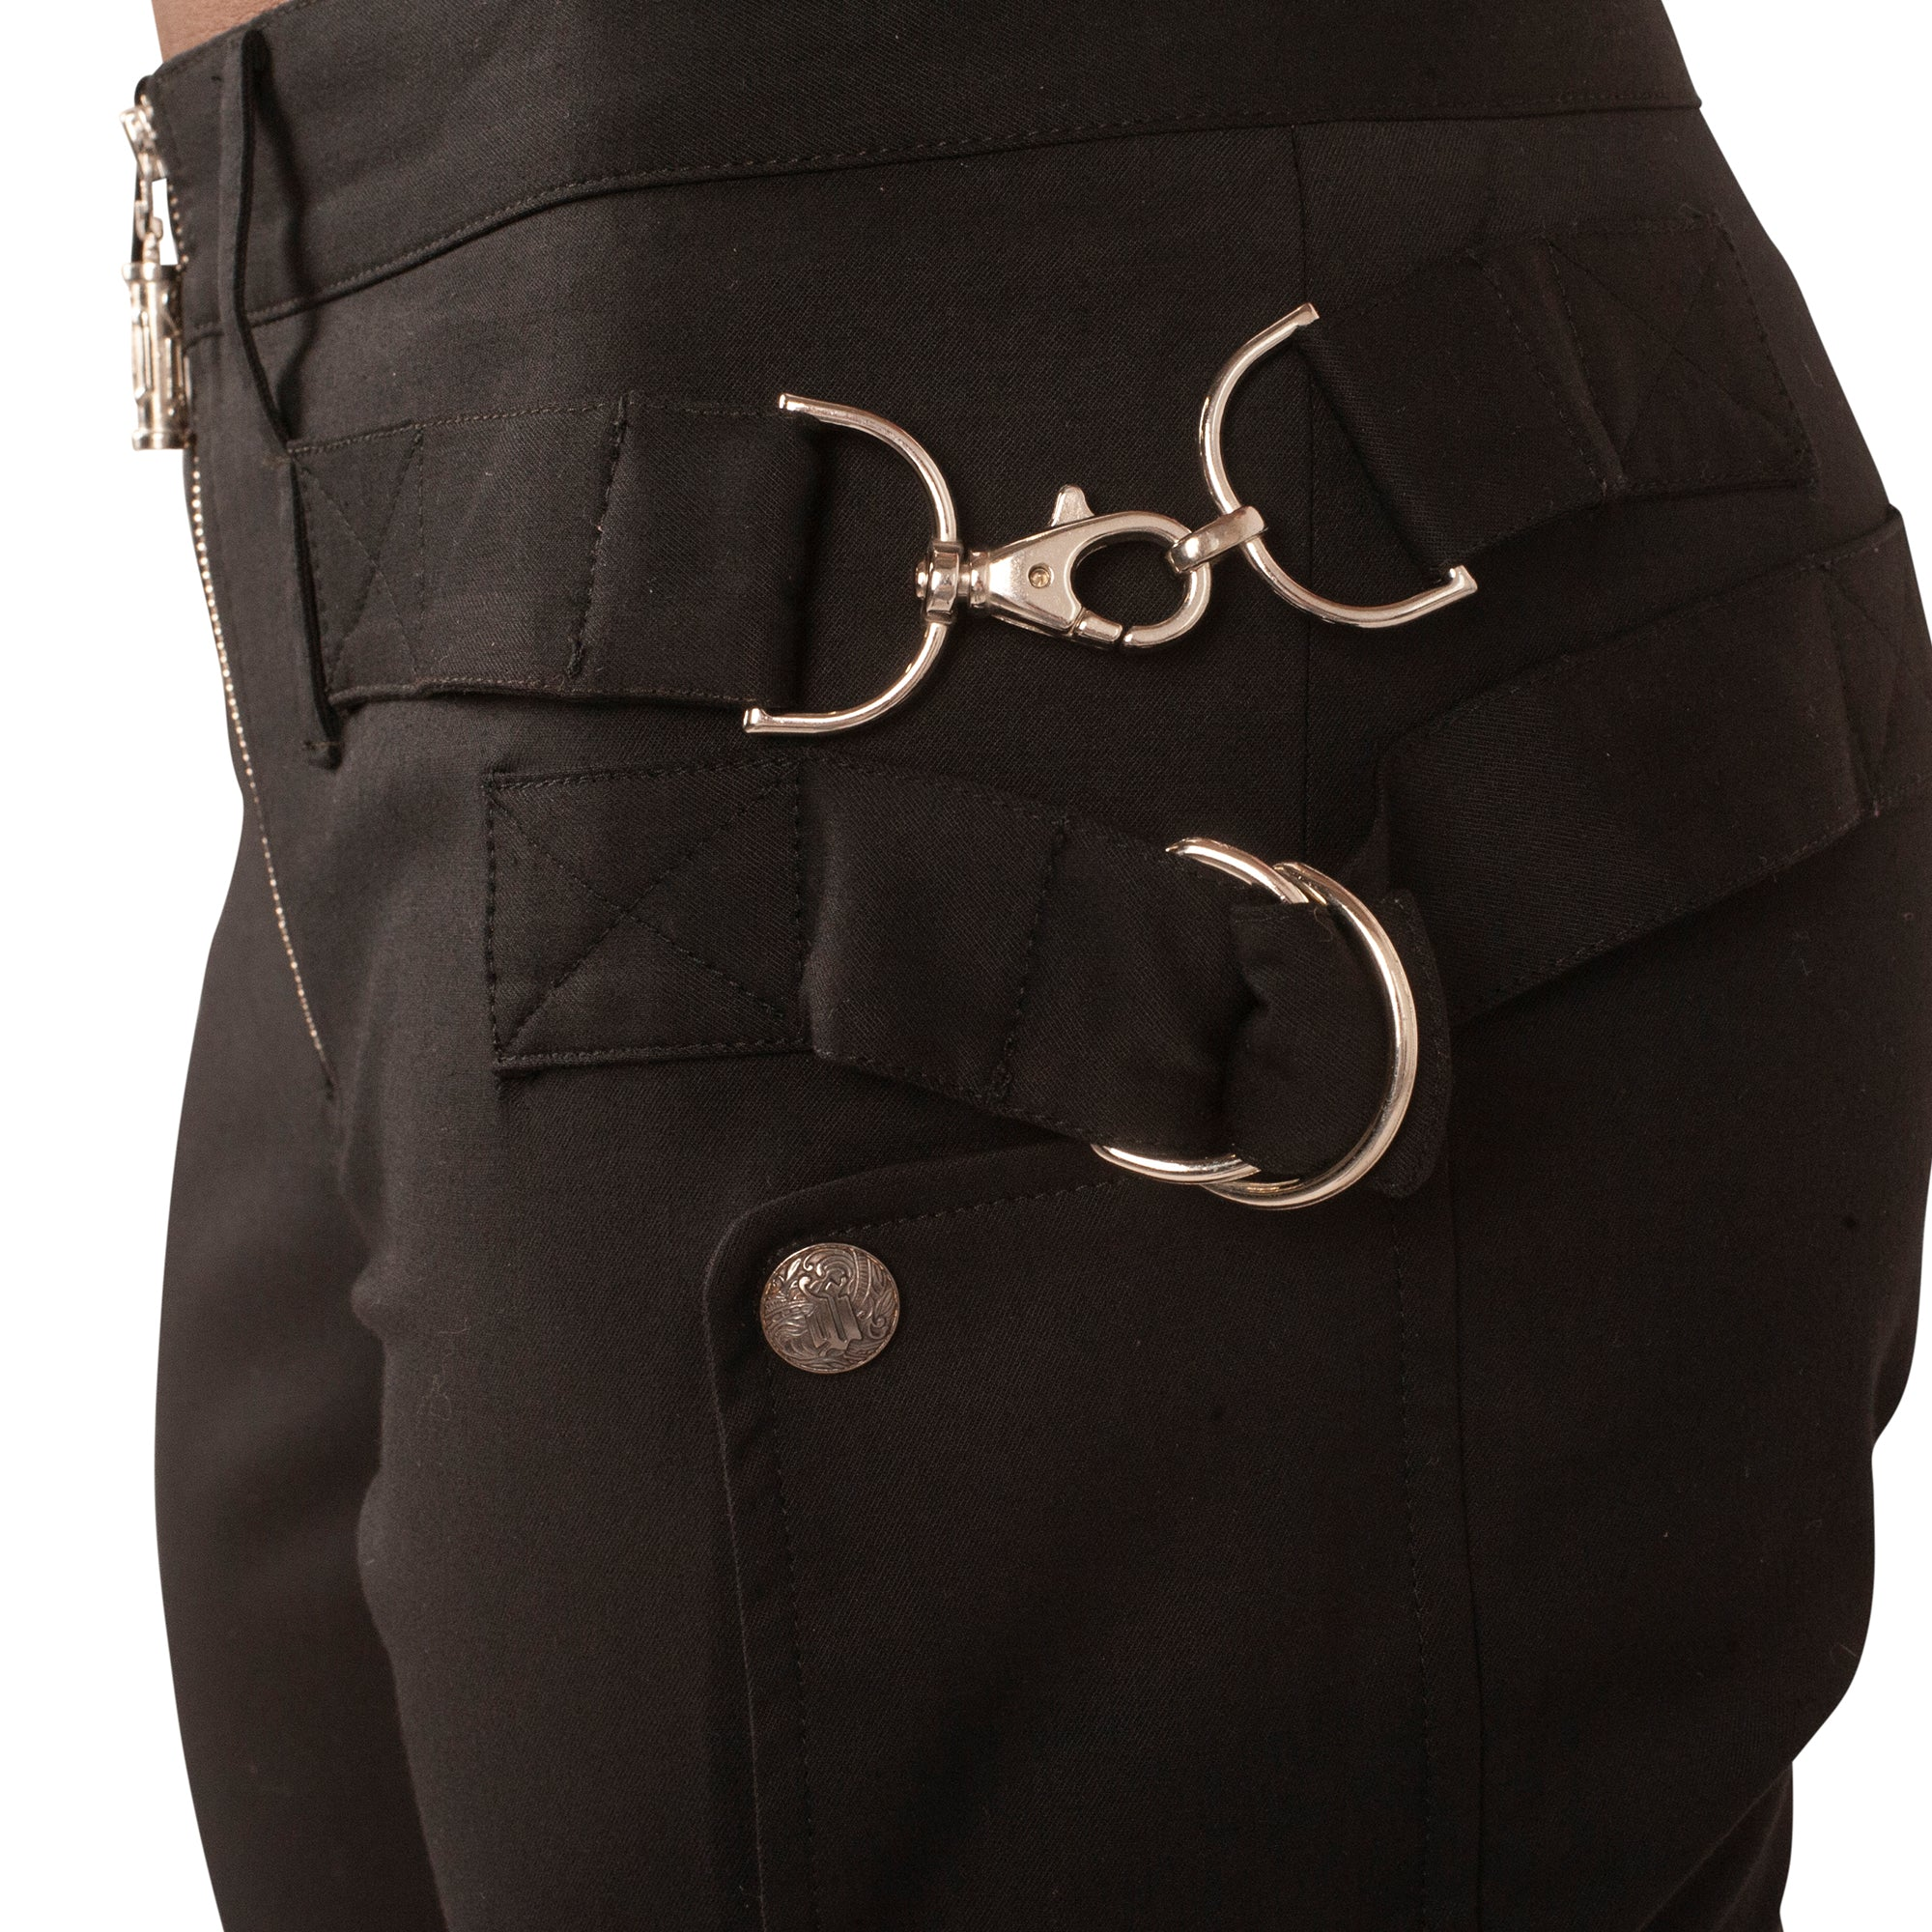 Gianni Versace Hardware Trousers (Black) UK 12